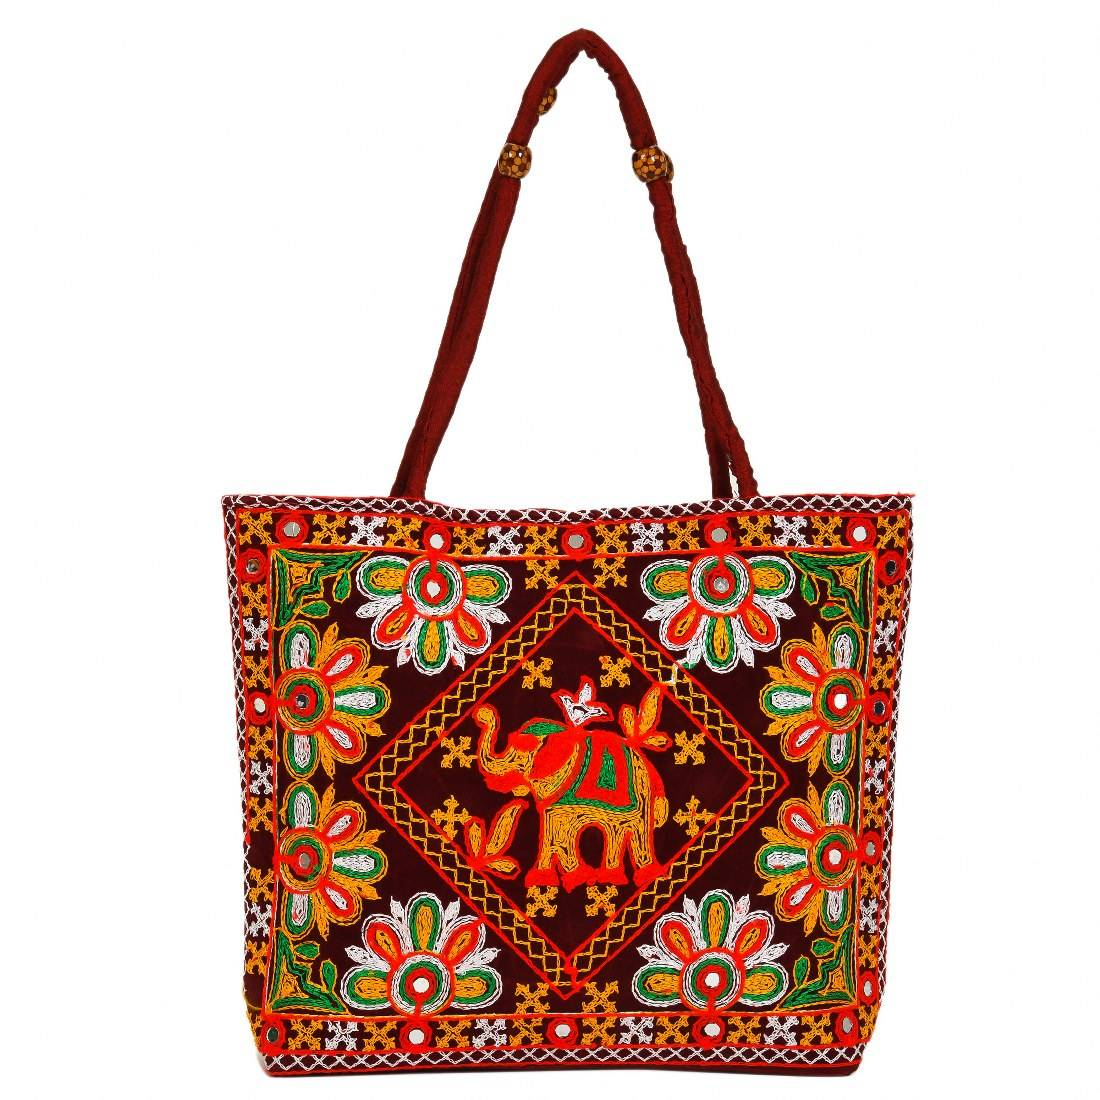 Beautiful Embroidery Handbag Women Tote Shoulder Bag Indian Designer Boho Bag Beach Bag (RBG-101-MAROON)